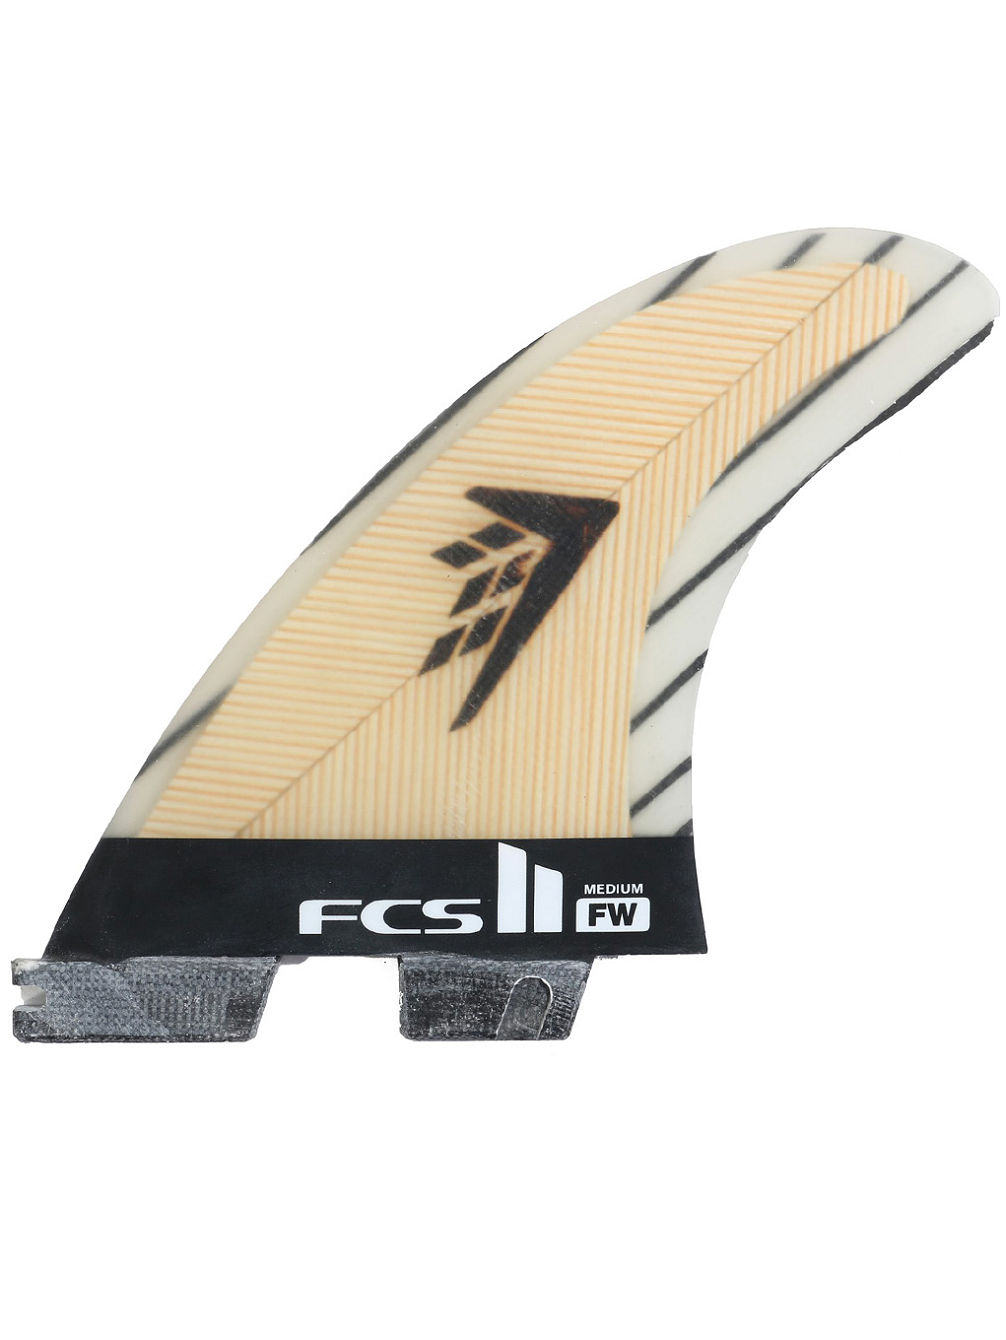 FCS II FW PC Carbon Medium Tri Fins